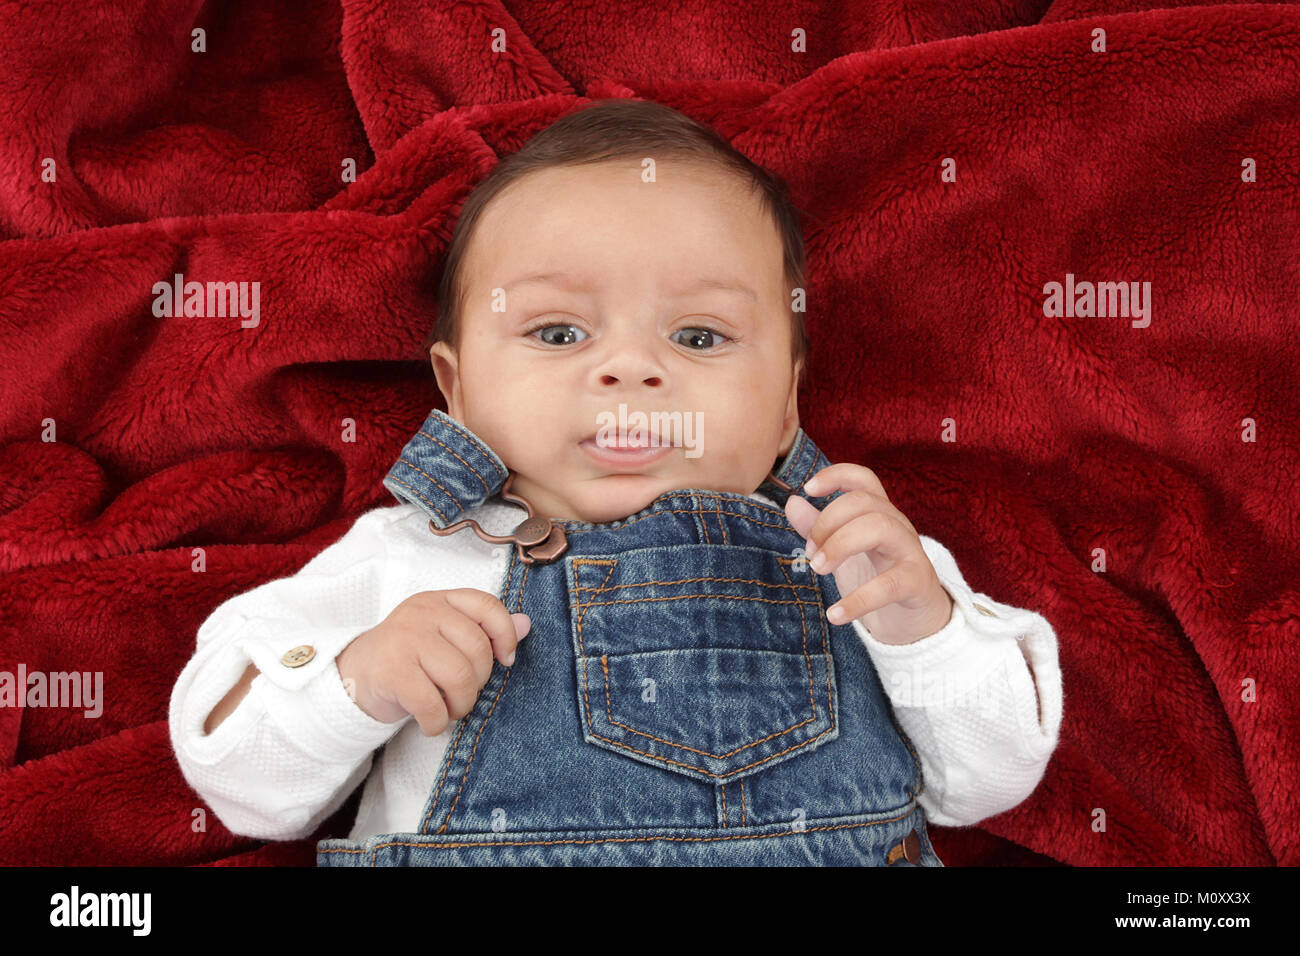 45eca7a8c6c 3 month old mixed race baby boy playing on a rug Stock Photo ...